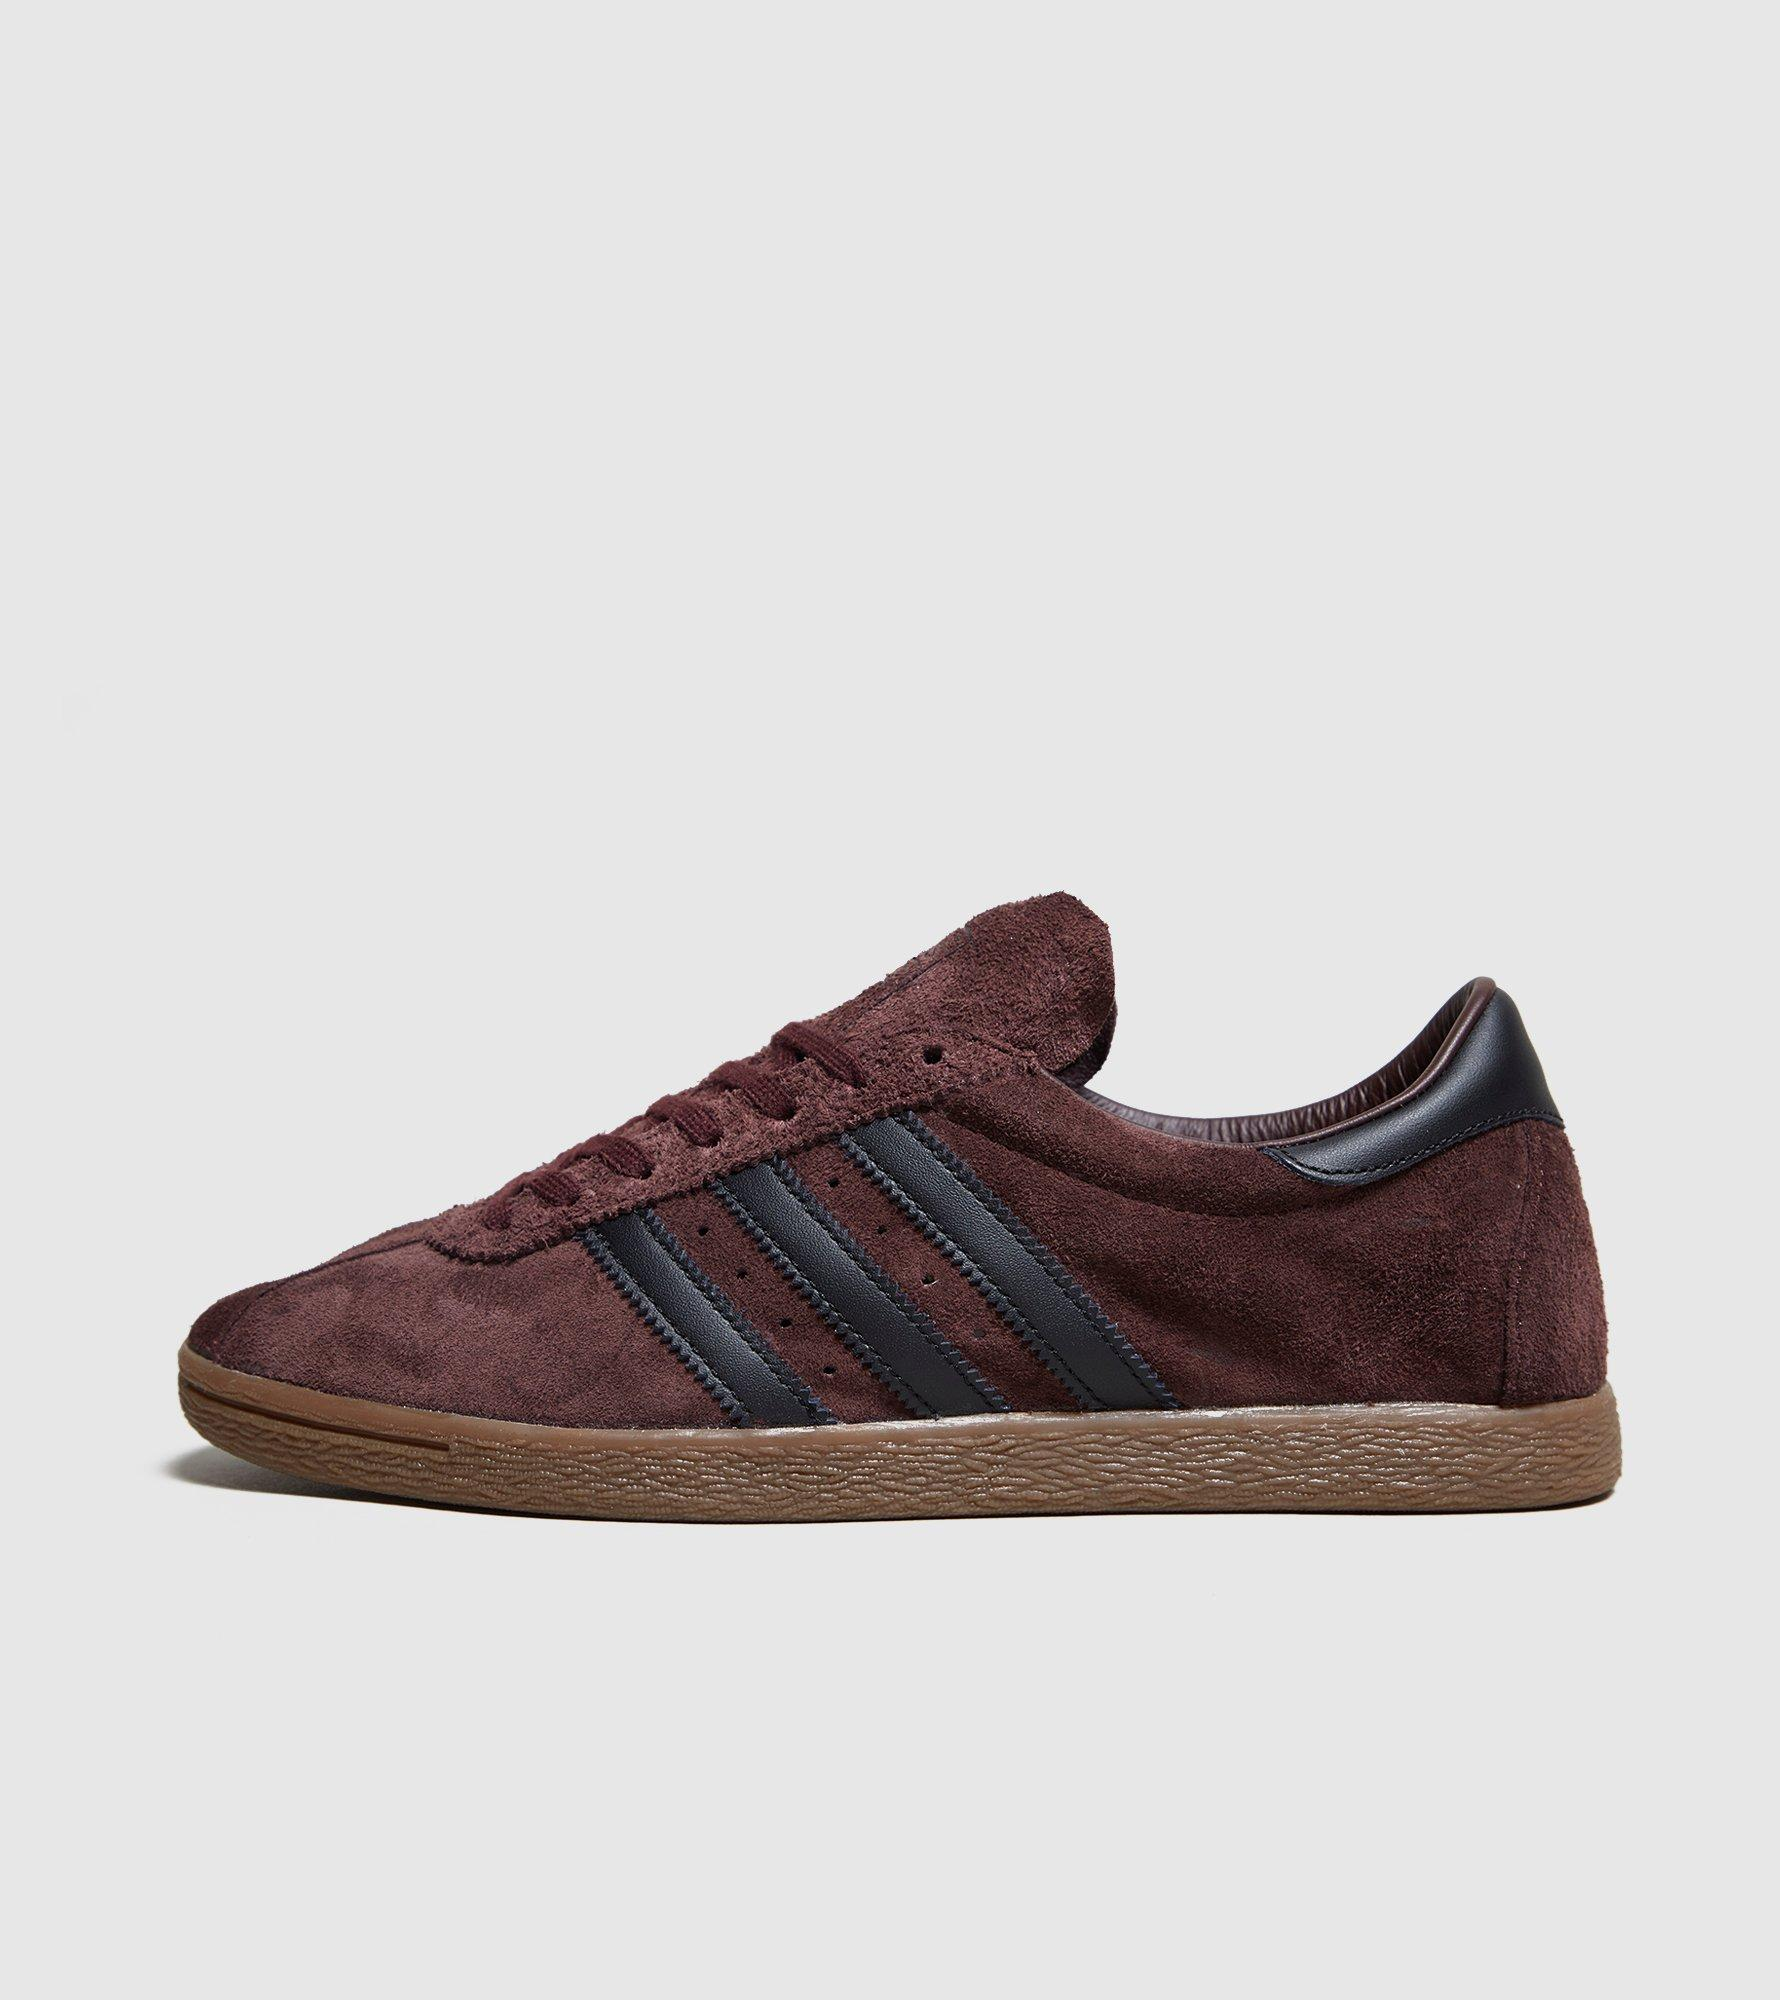 3eb1534bea827 all red adidas shoes for men us to uk shoe size womens adidas ...